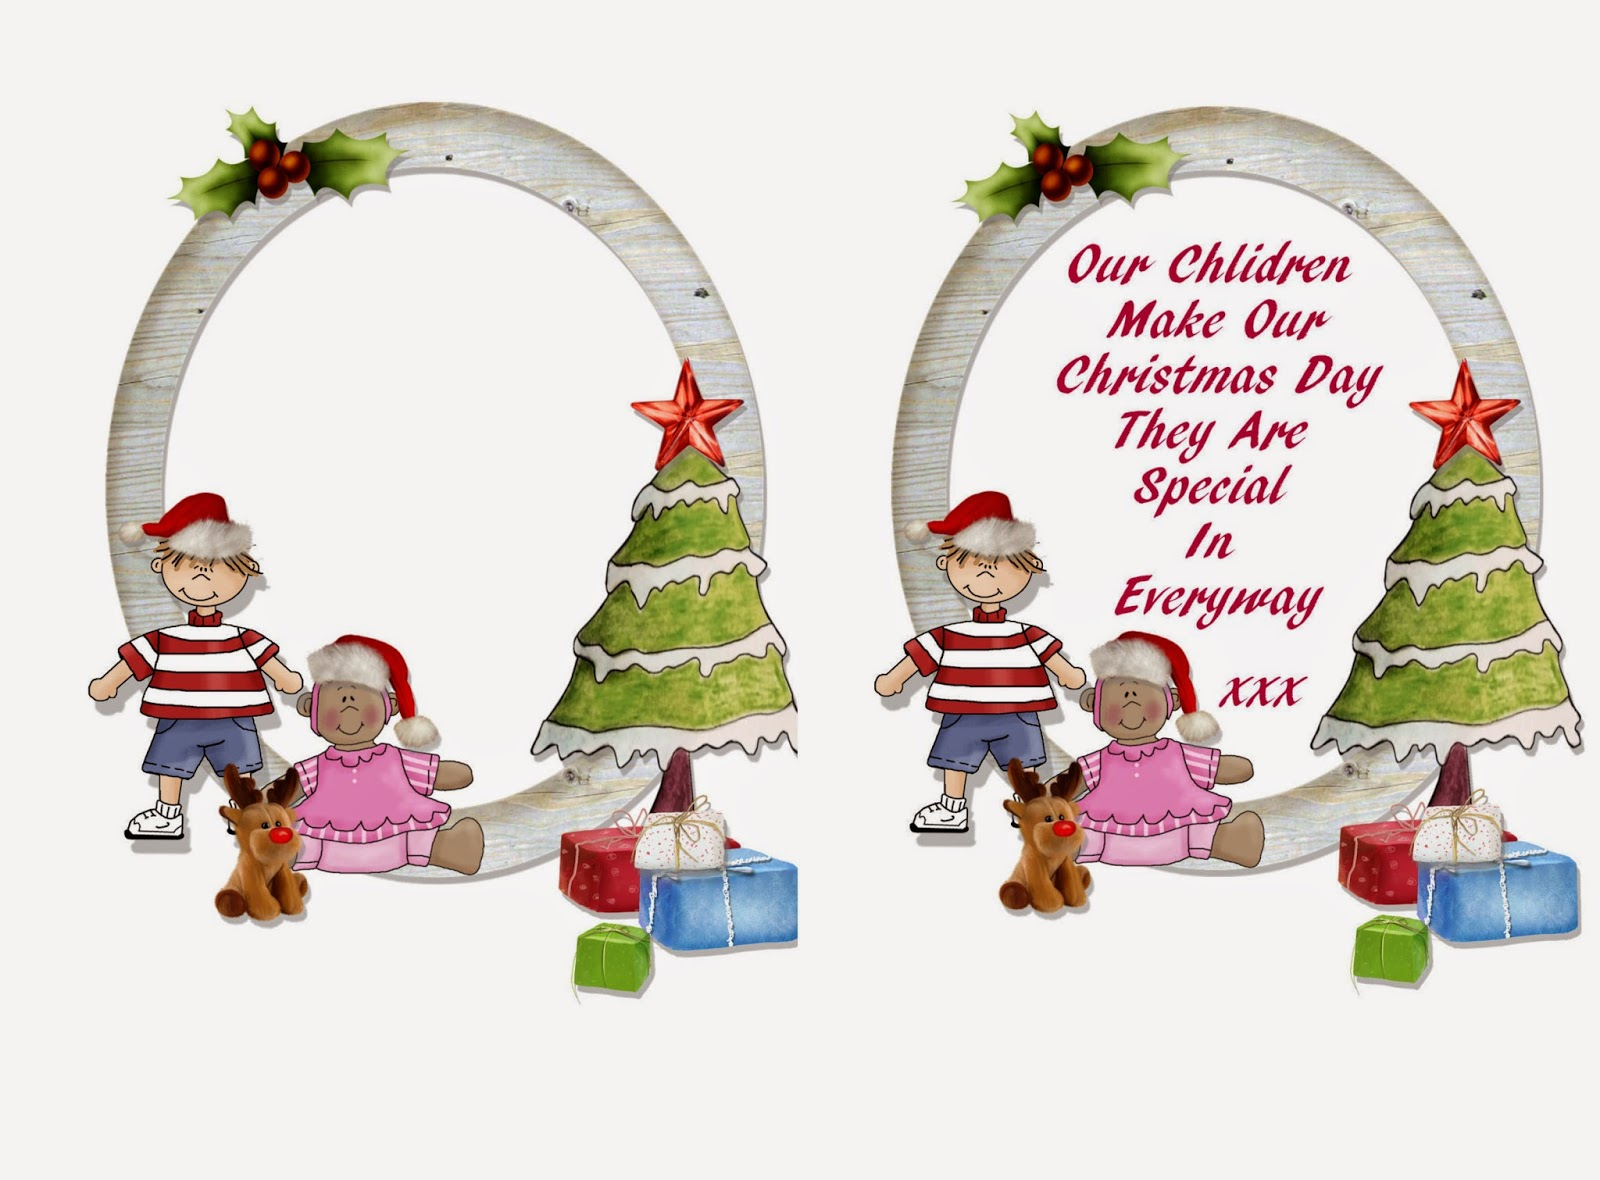 Christmas Bible Verses For Cards Kids Kjv Daughter And: Happy Dussehra Quotes: Christmas 2014 Card Verses Free